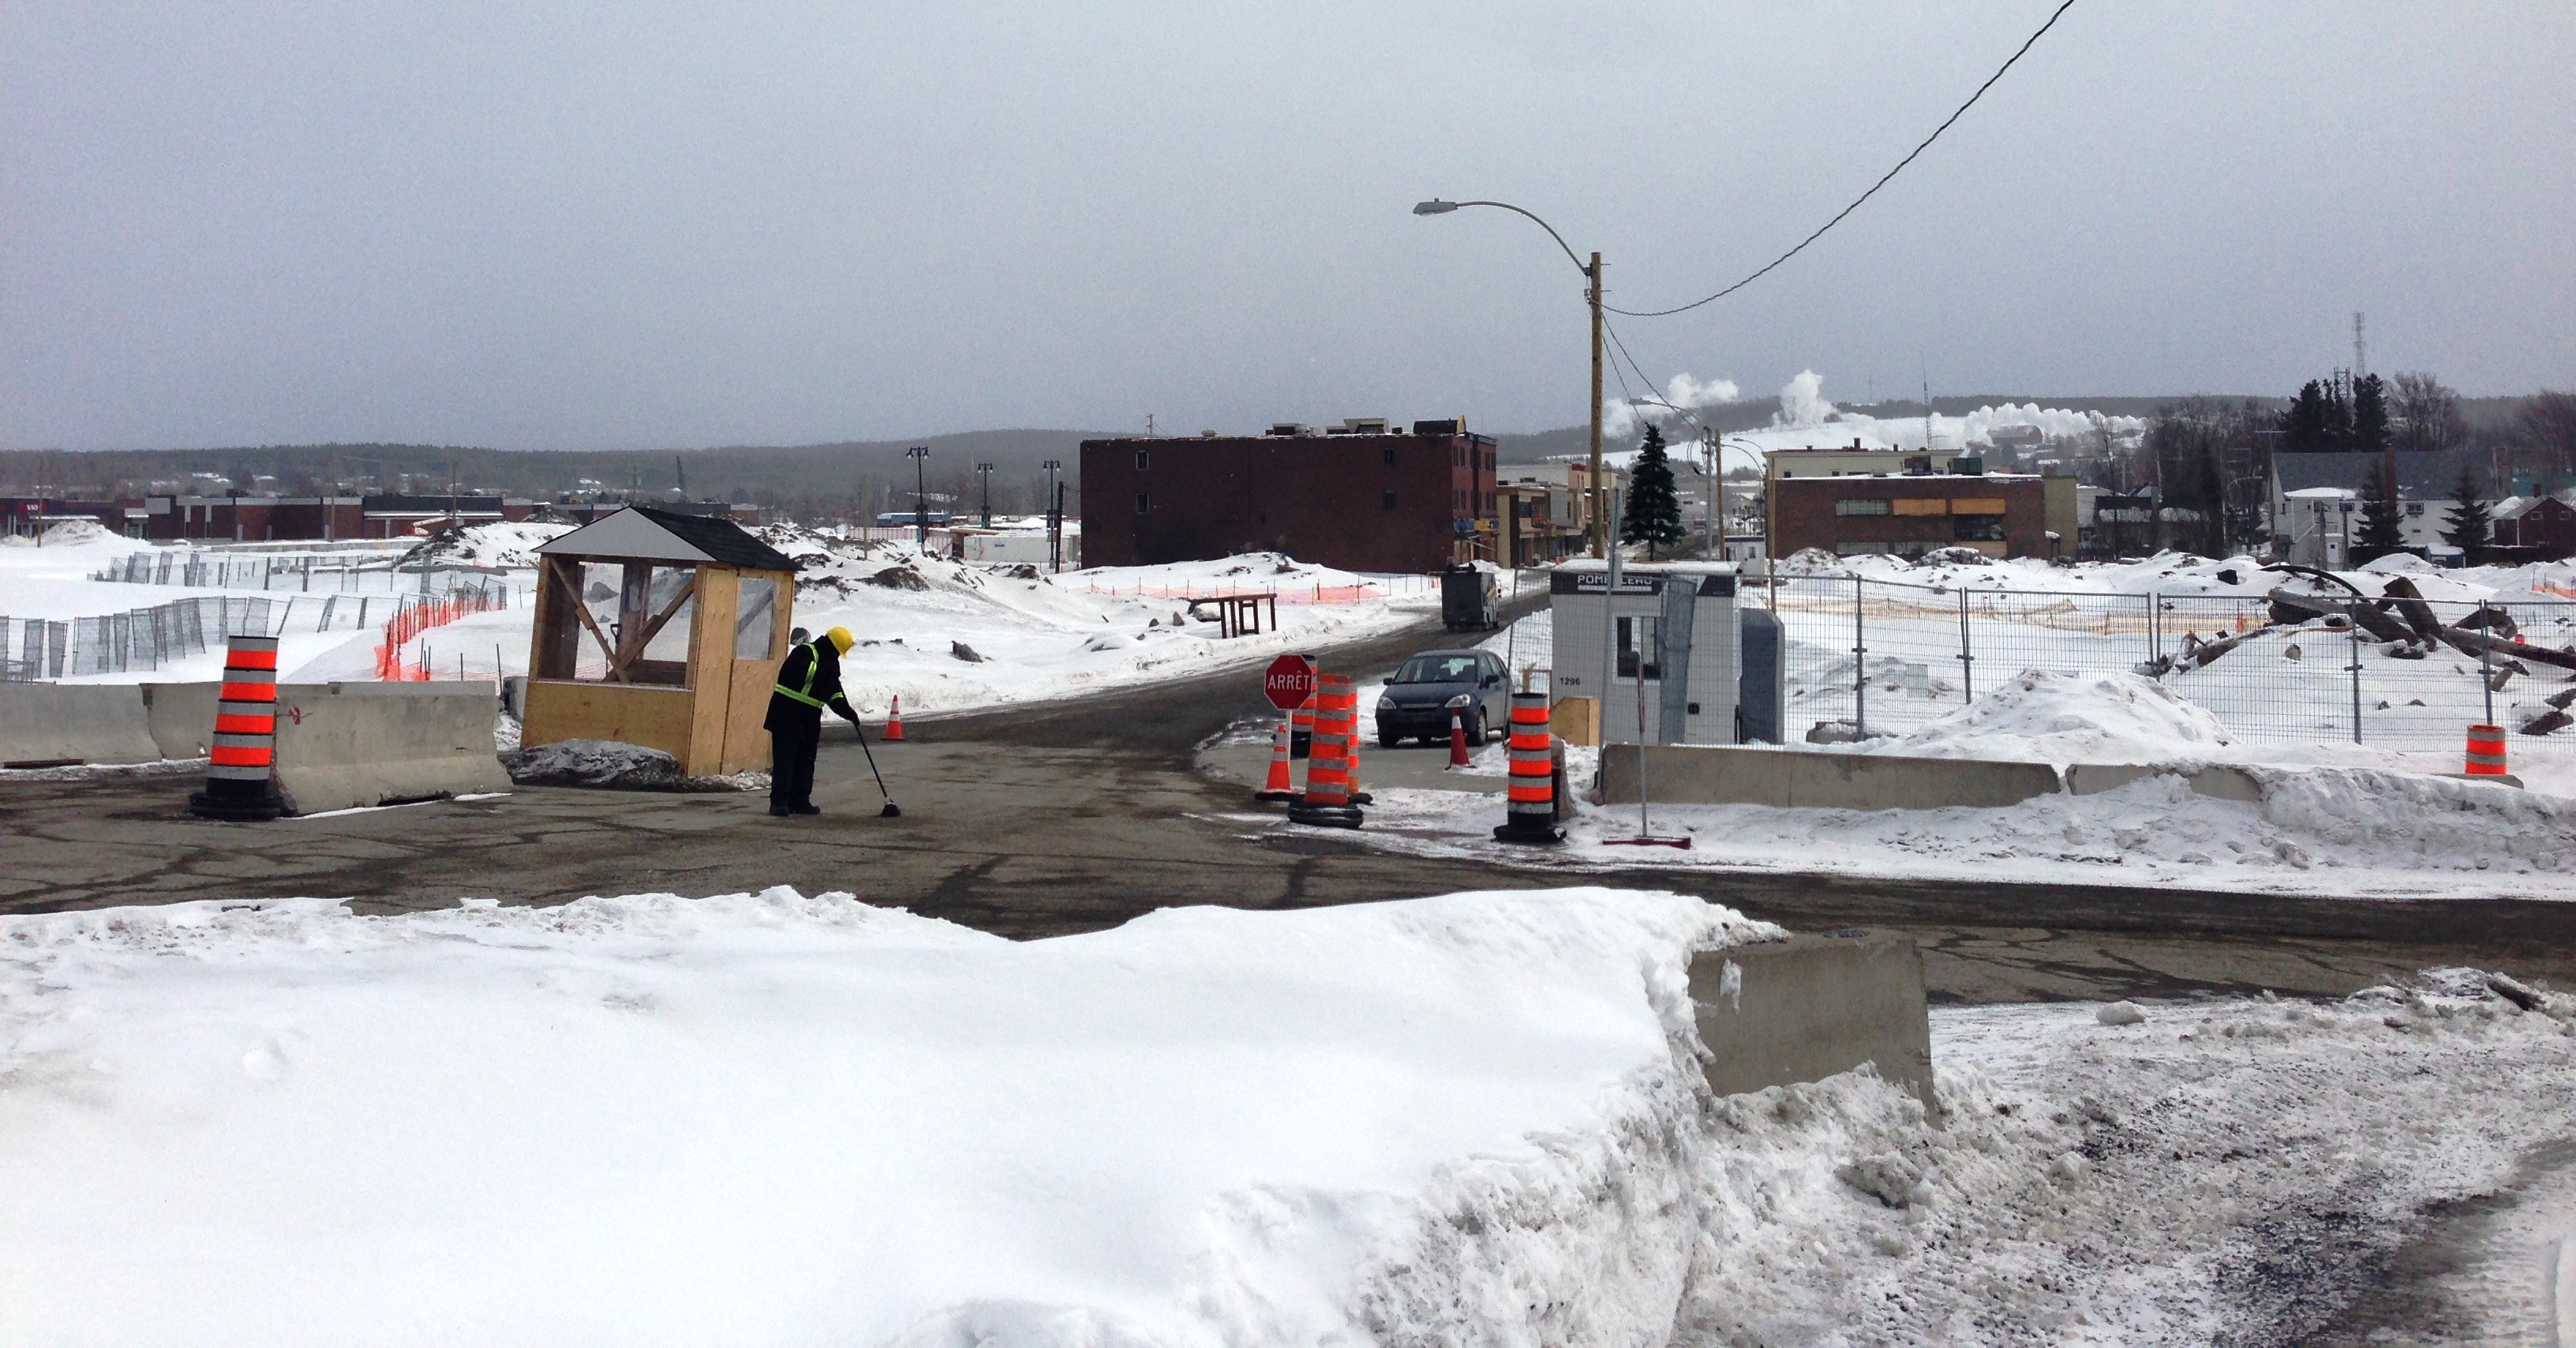 Officials established this checkpoint at the north end of town. The area right beyond the checkpoint used to be buildings and homes.